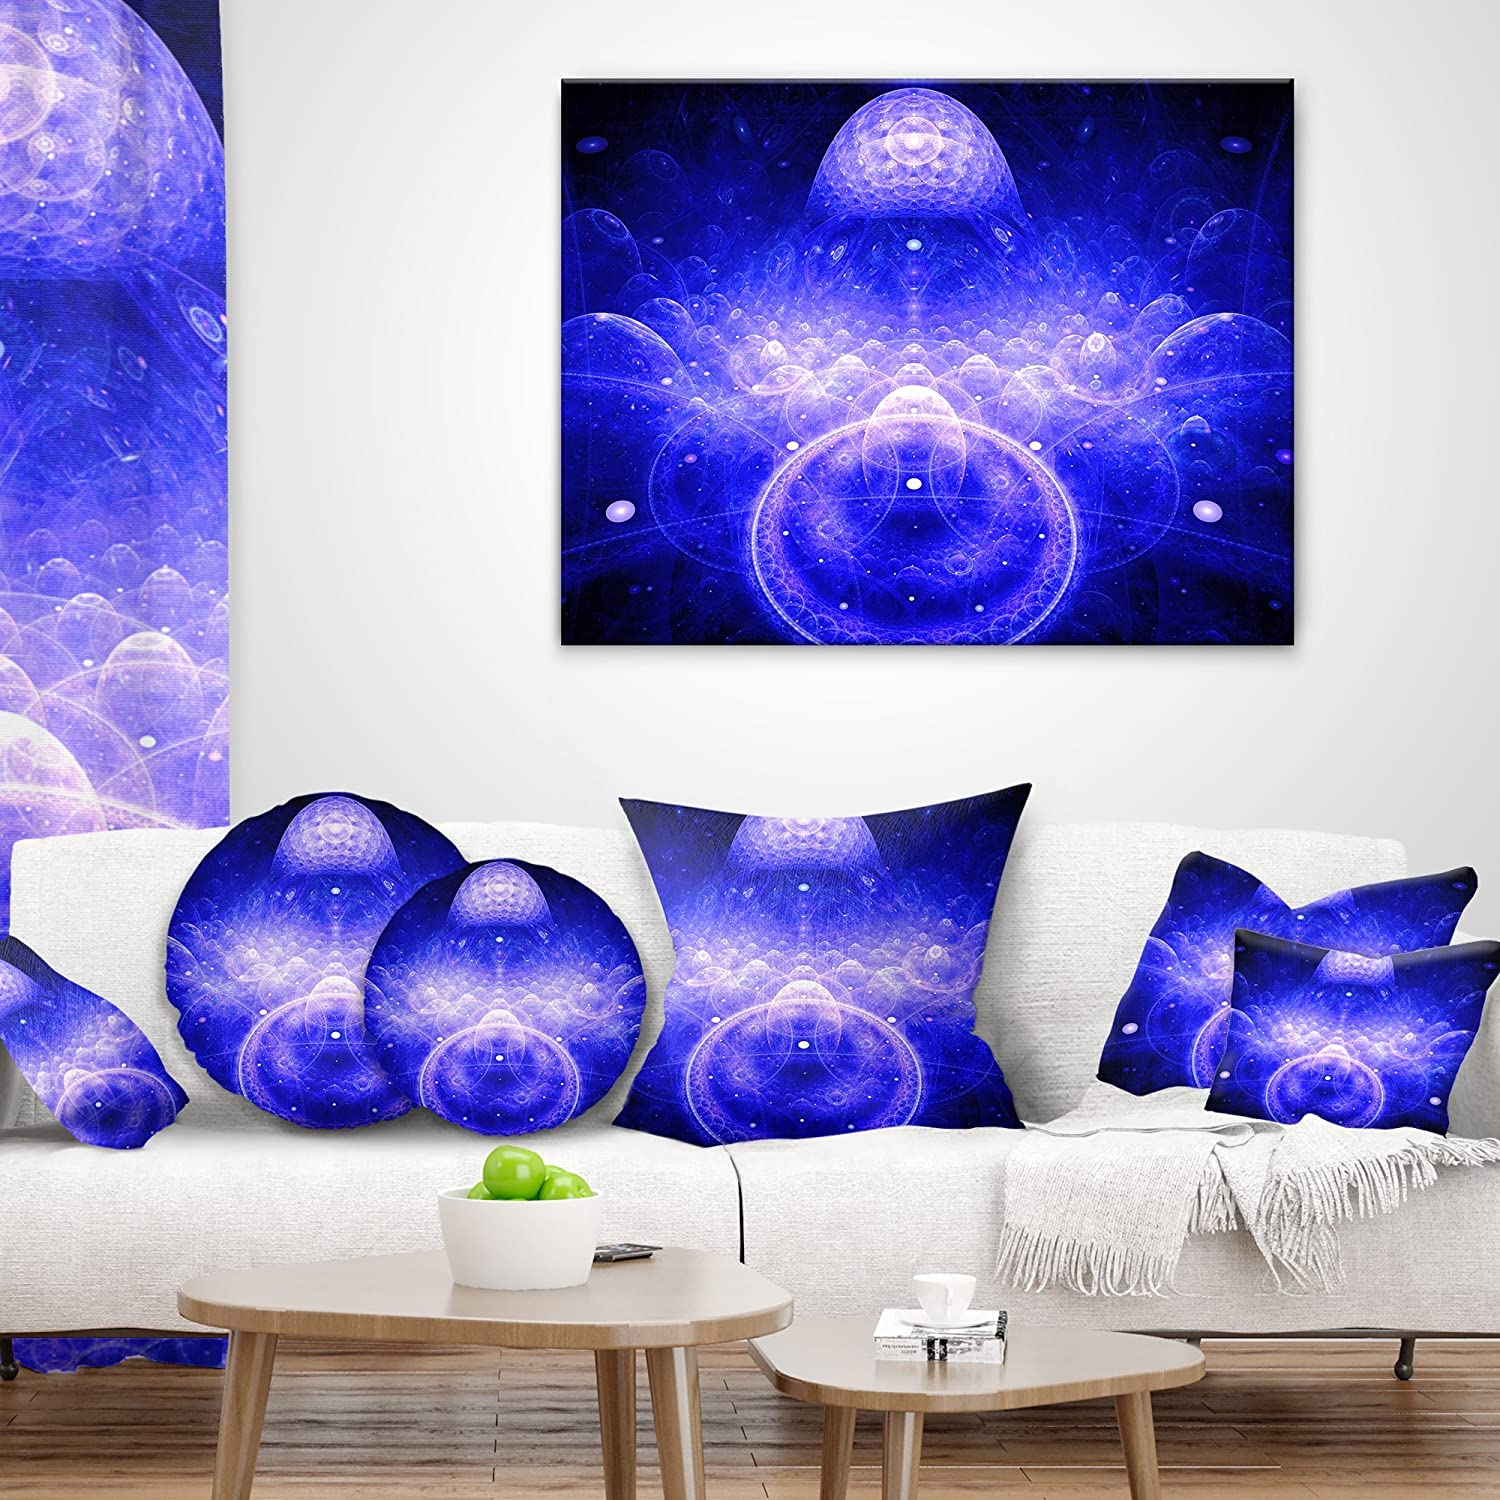 Designart CU16362-18-18 Mystic 3D Surreal Illustration Abstract Cushion Cover for Living Room in Sofa Throw Pillow 18 in x 18 in